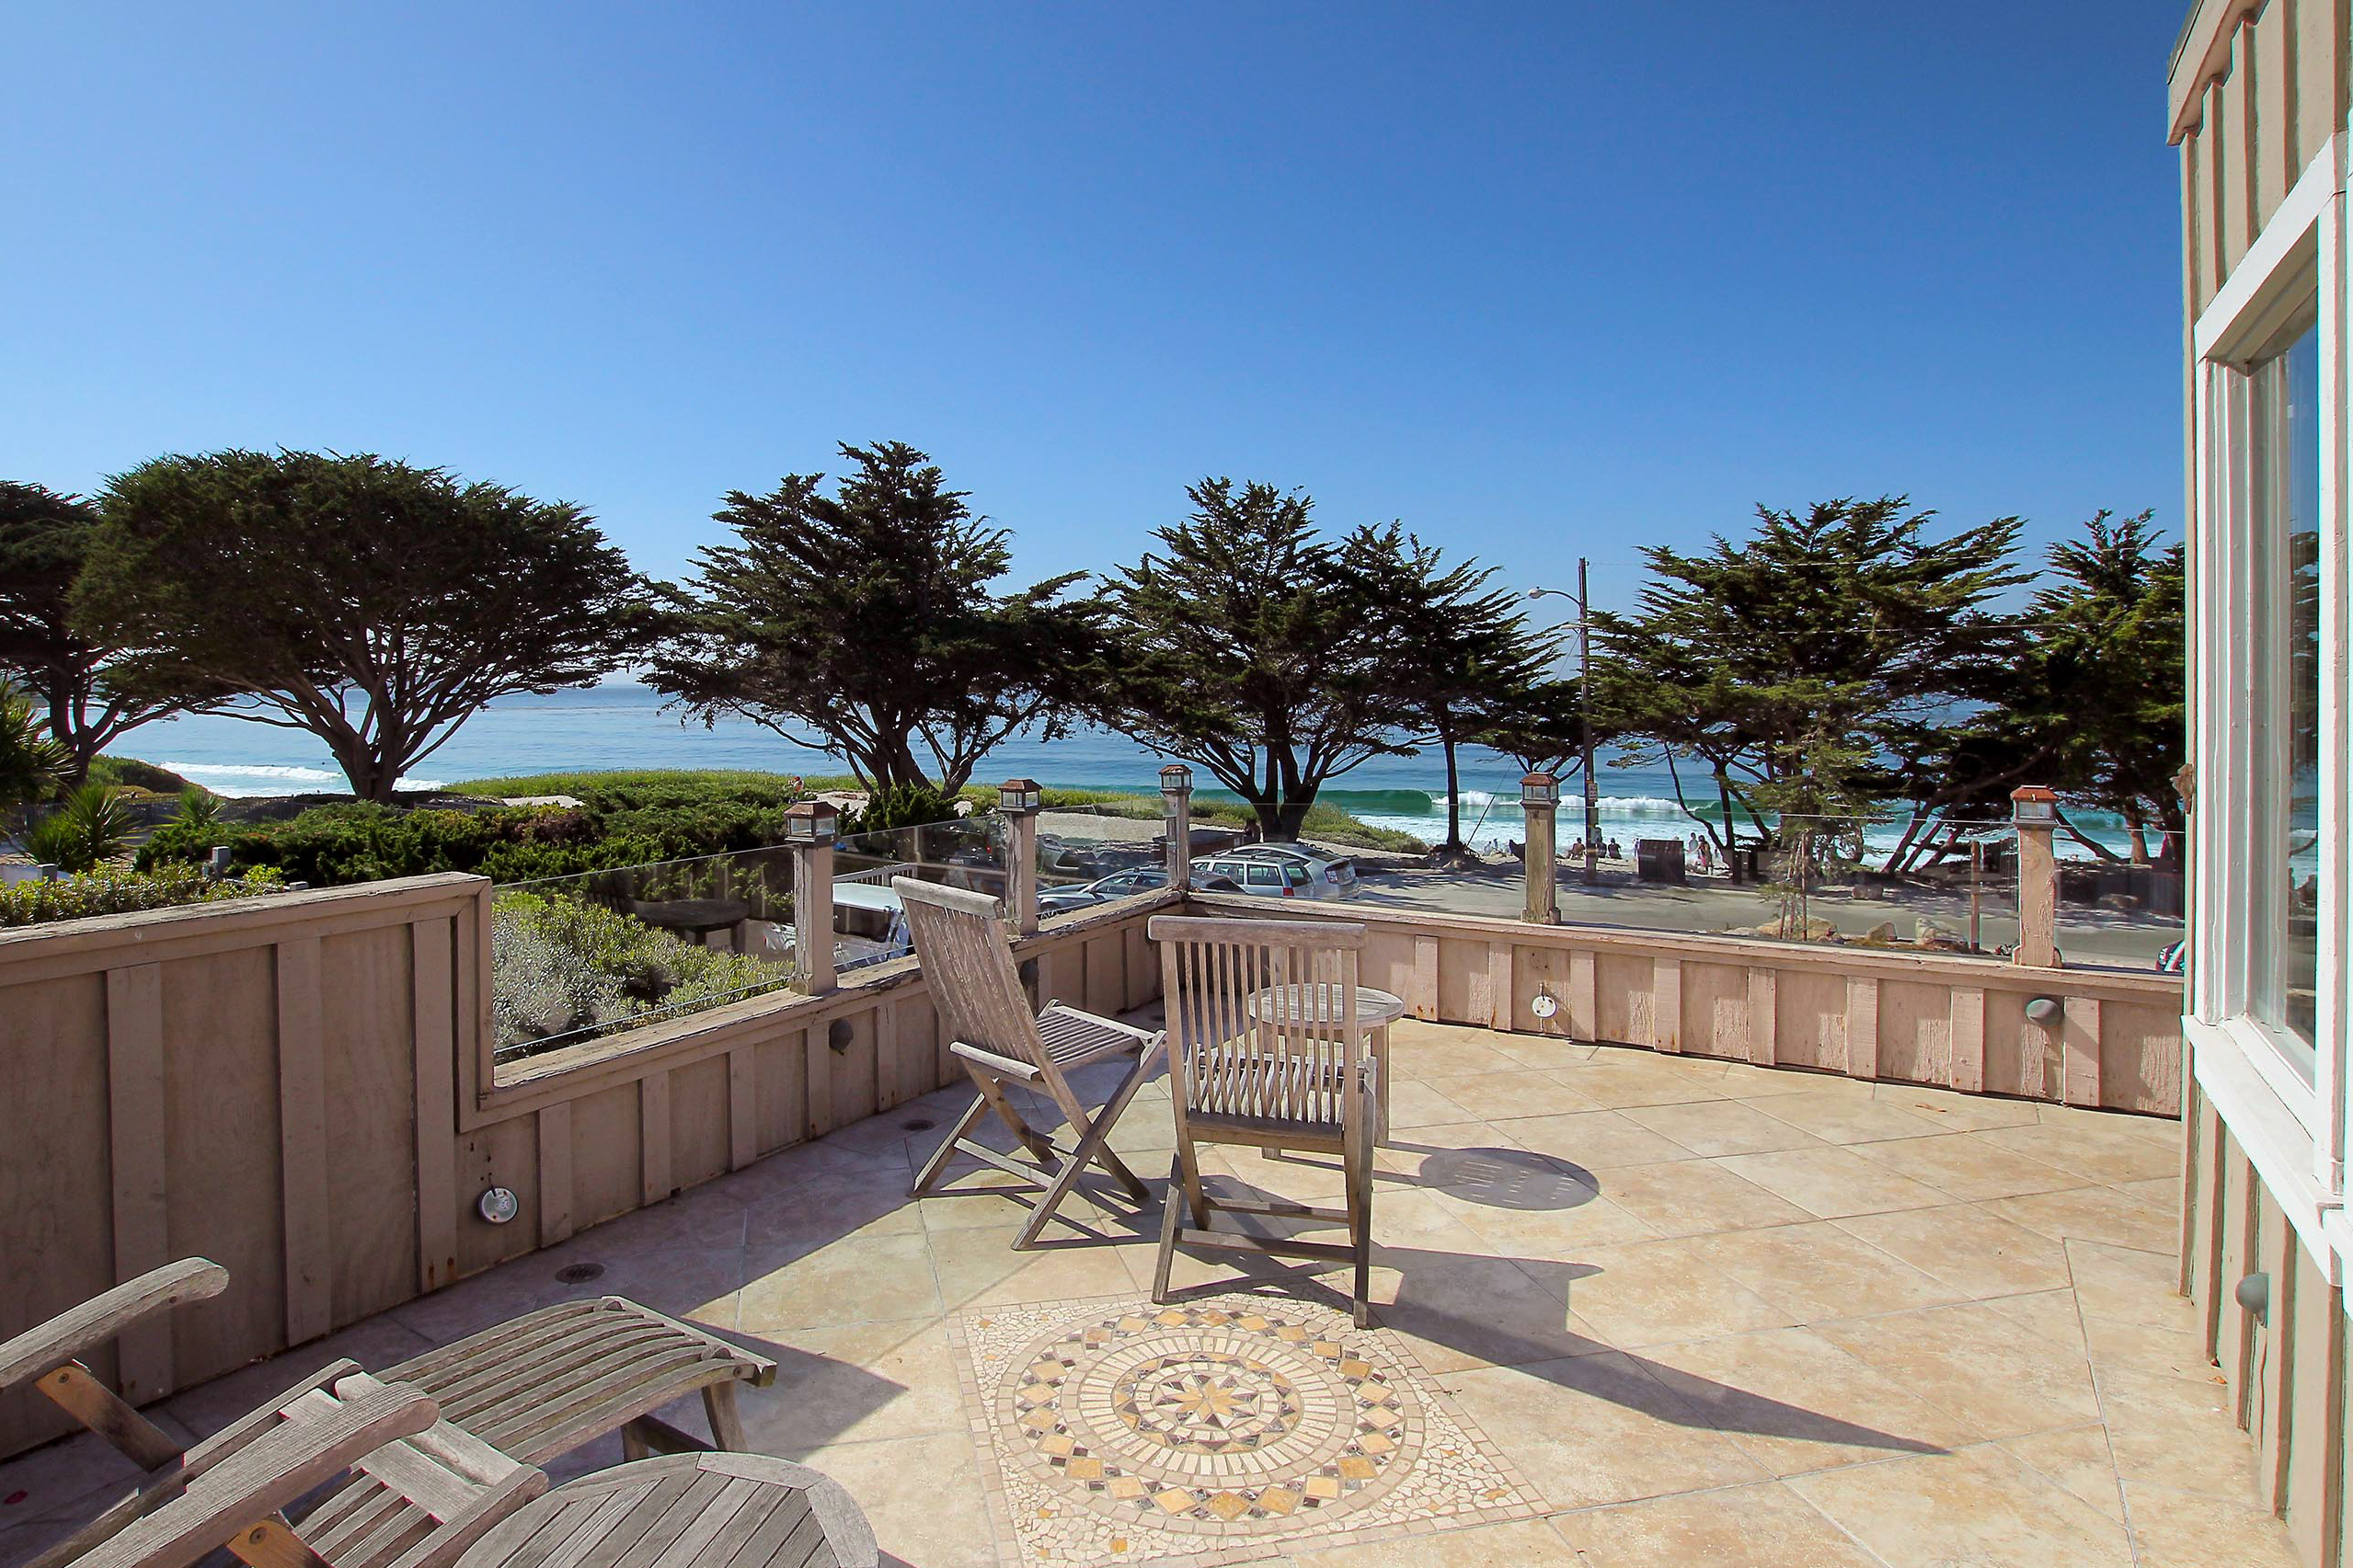 Carmel by the Sea CA Vacation Rental Welcome to Carmel!